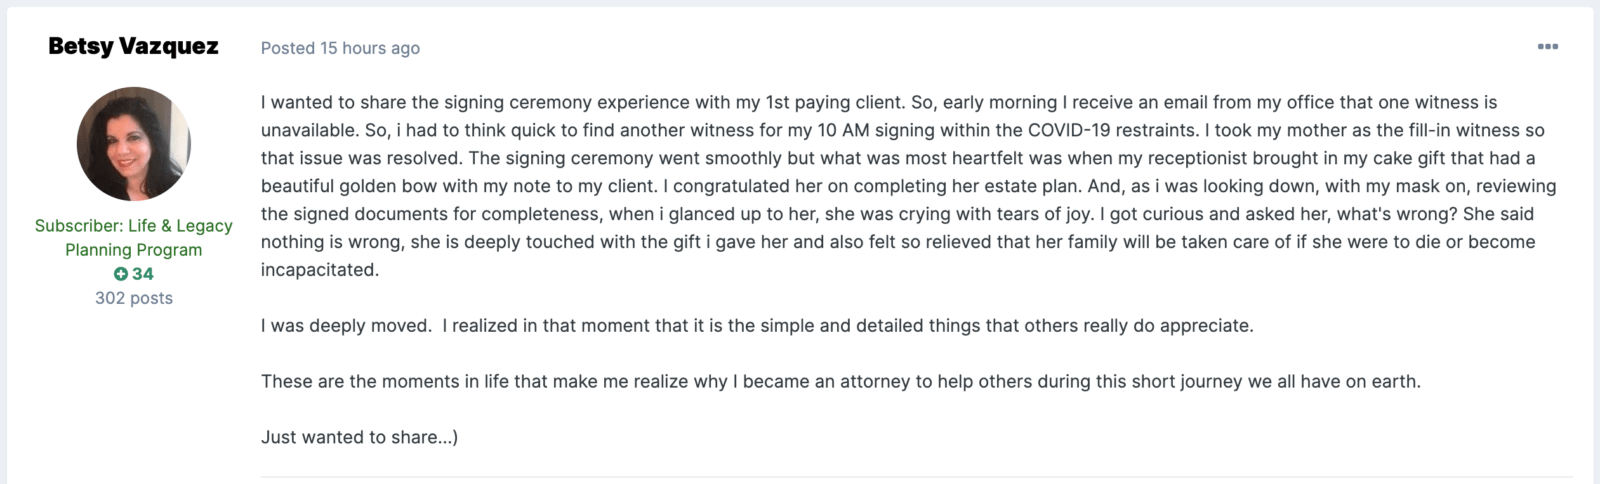 Betsy Vasquez Testimonial turning lawyer stereotypes on their head.